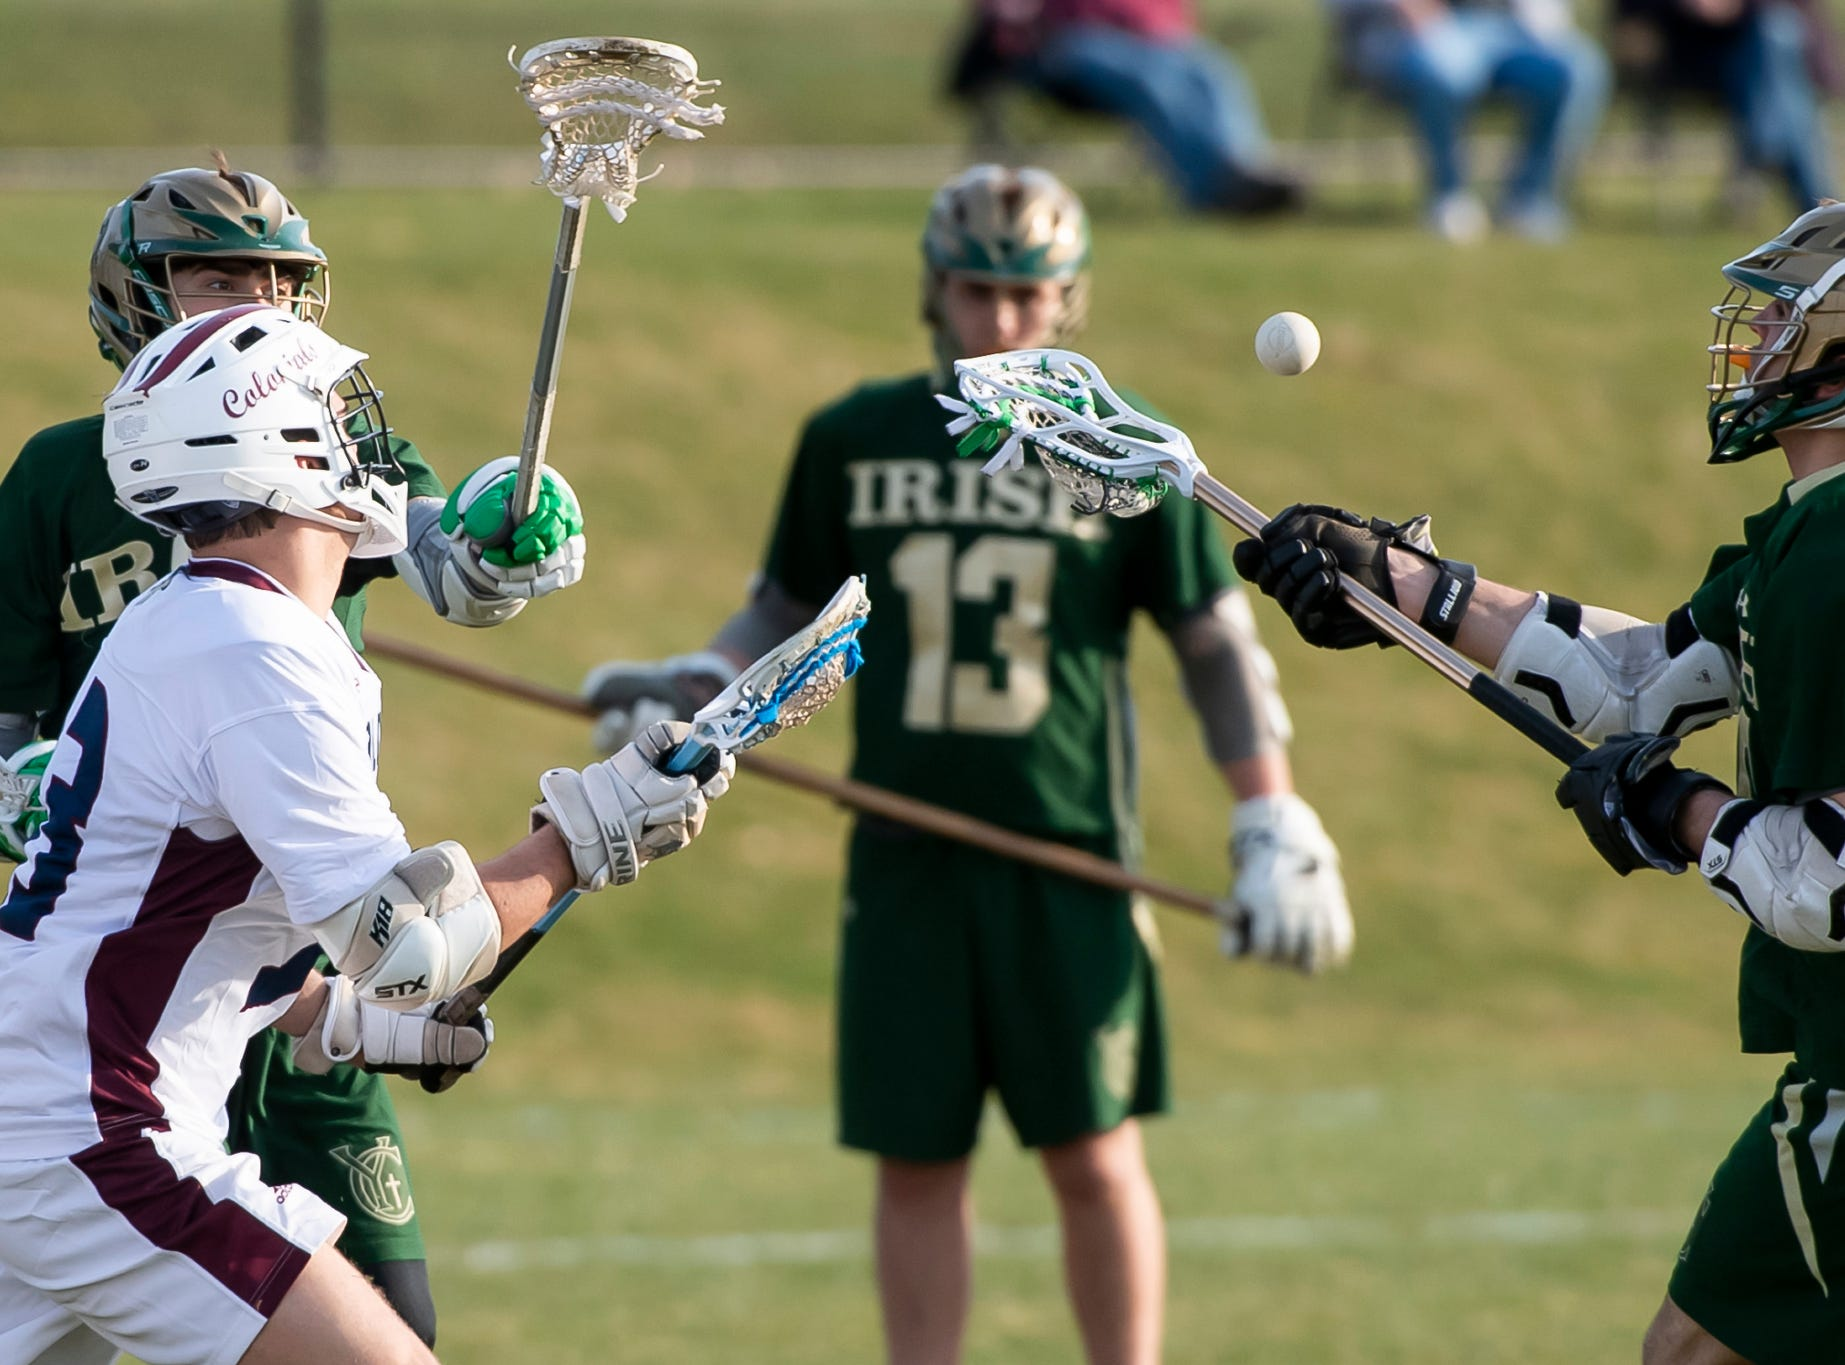 York Catholic and New Oxford players vie for the ball during a YAIAA boys' lacrosse on Thursday, April 4, 2019. York Catholic won 14-8.